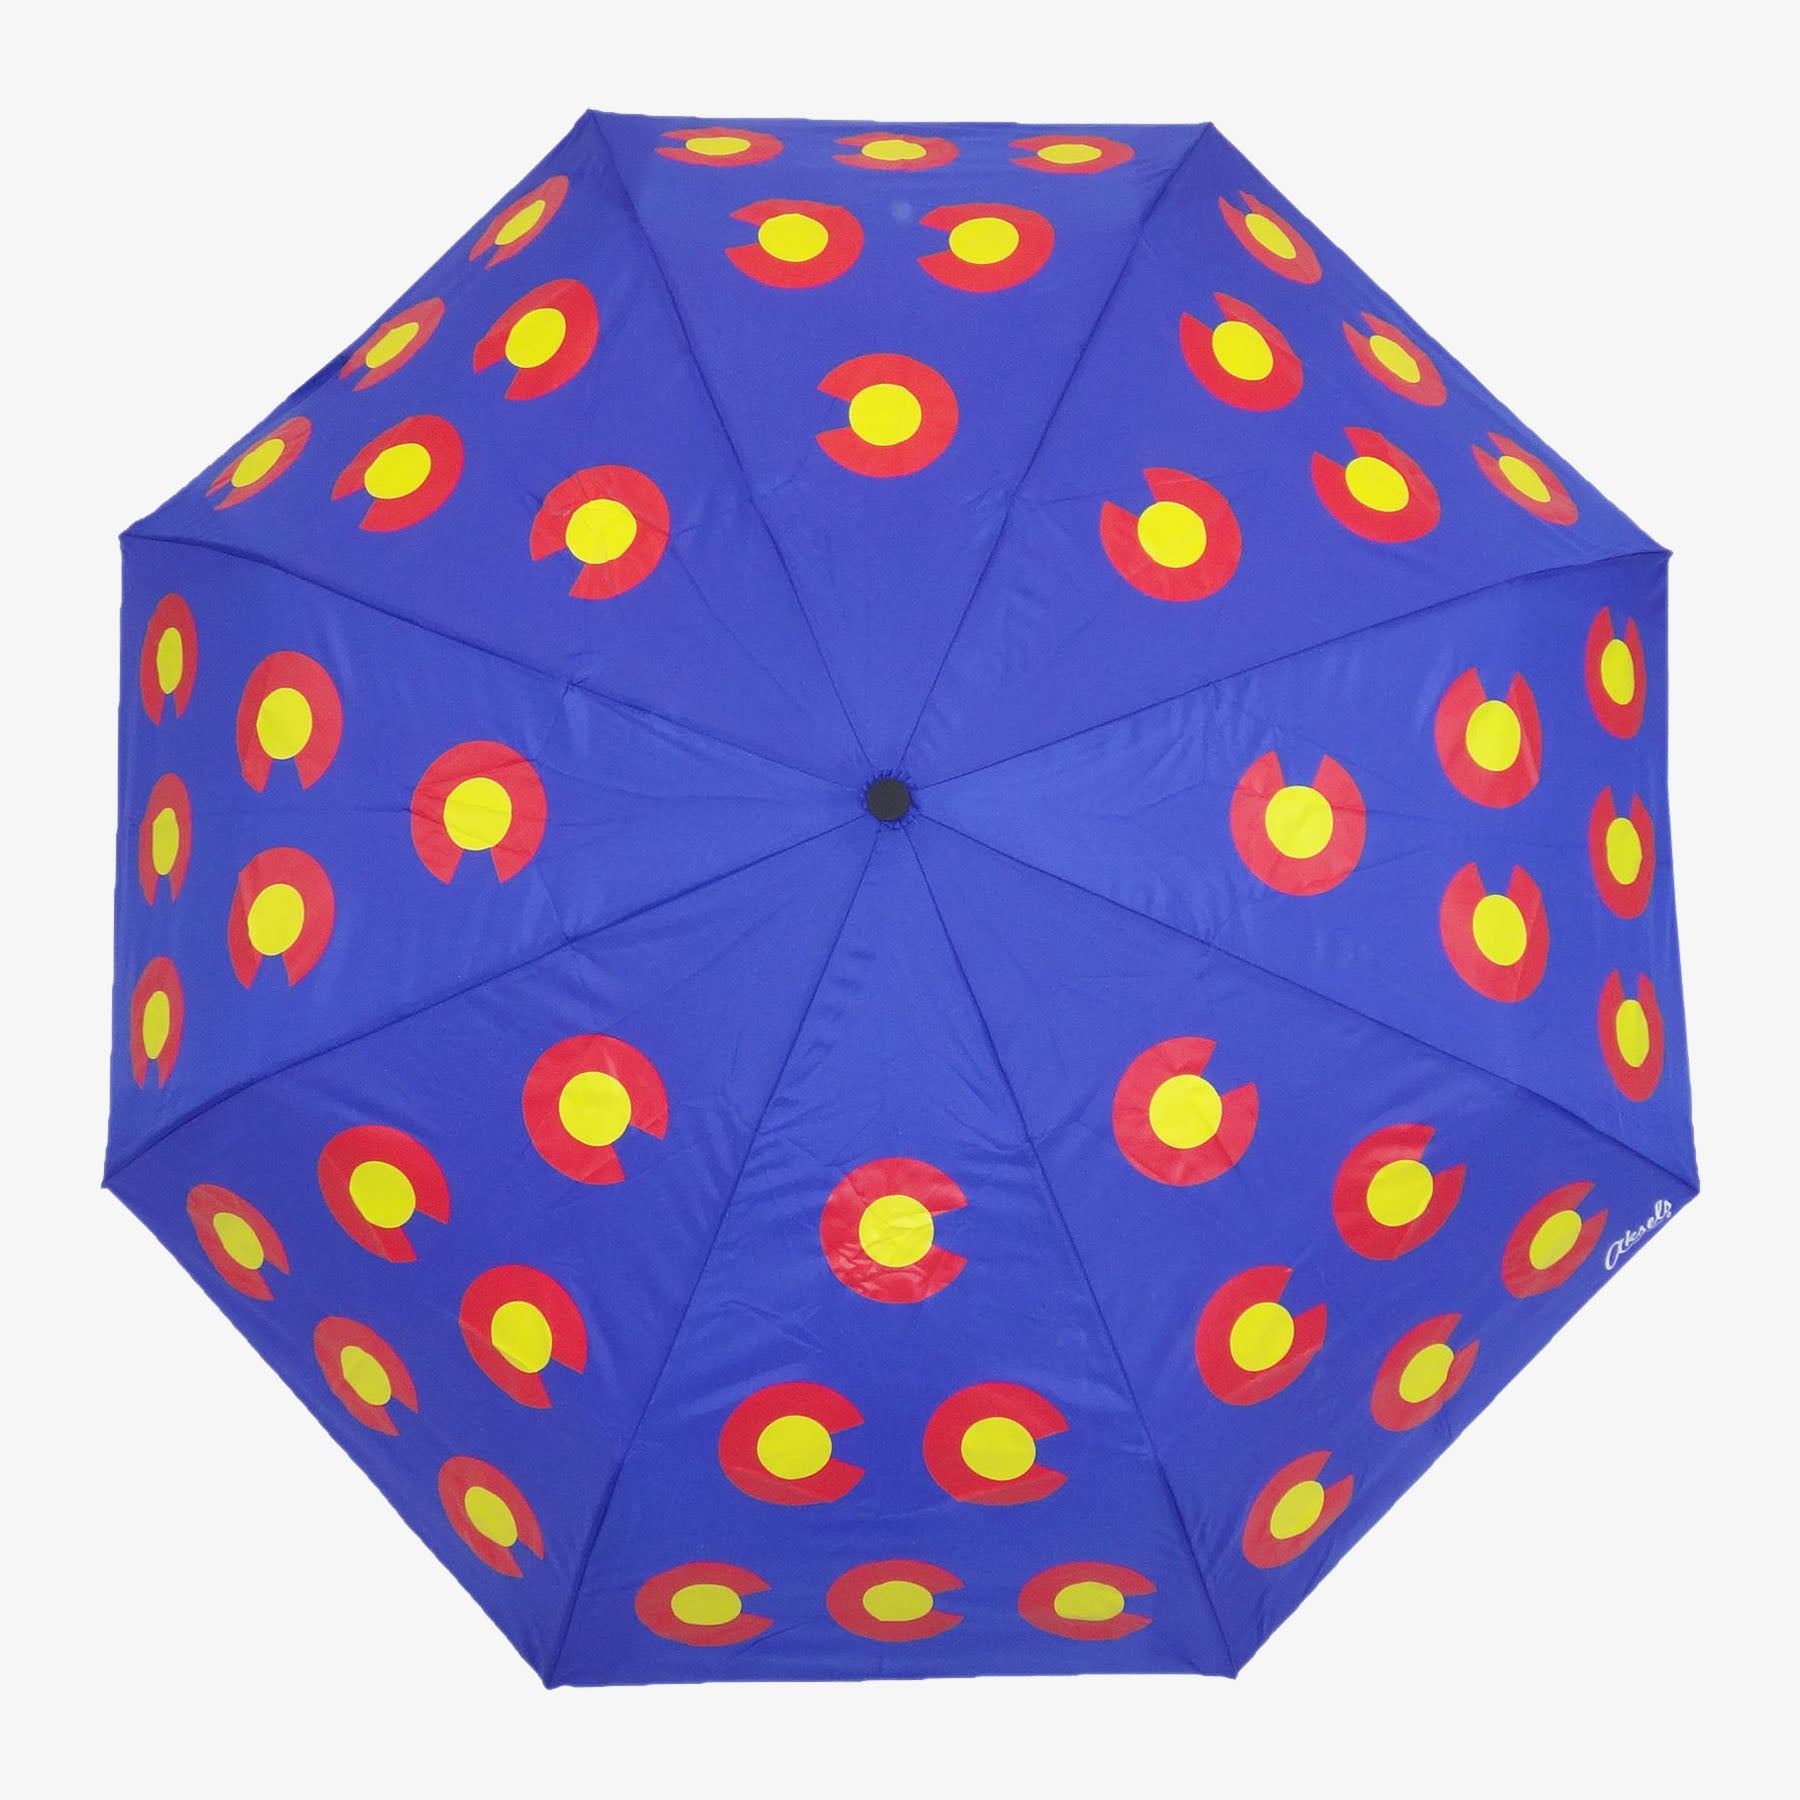 Colorado Umbrella